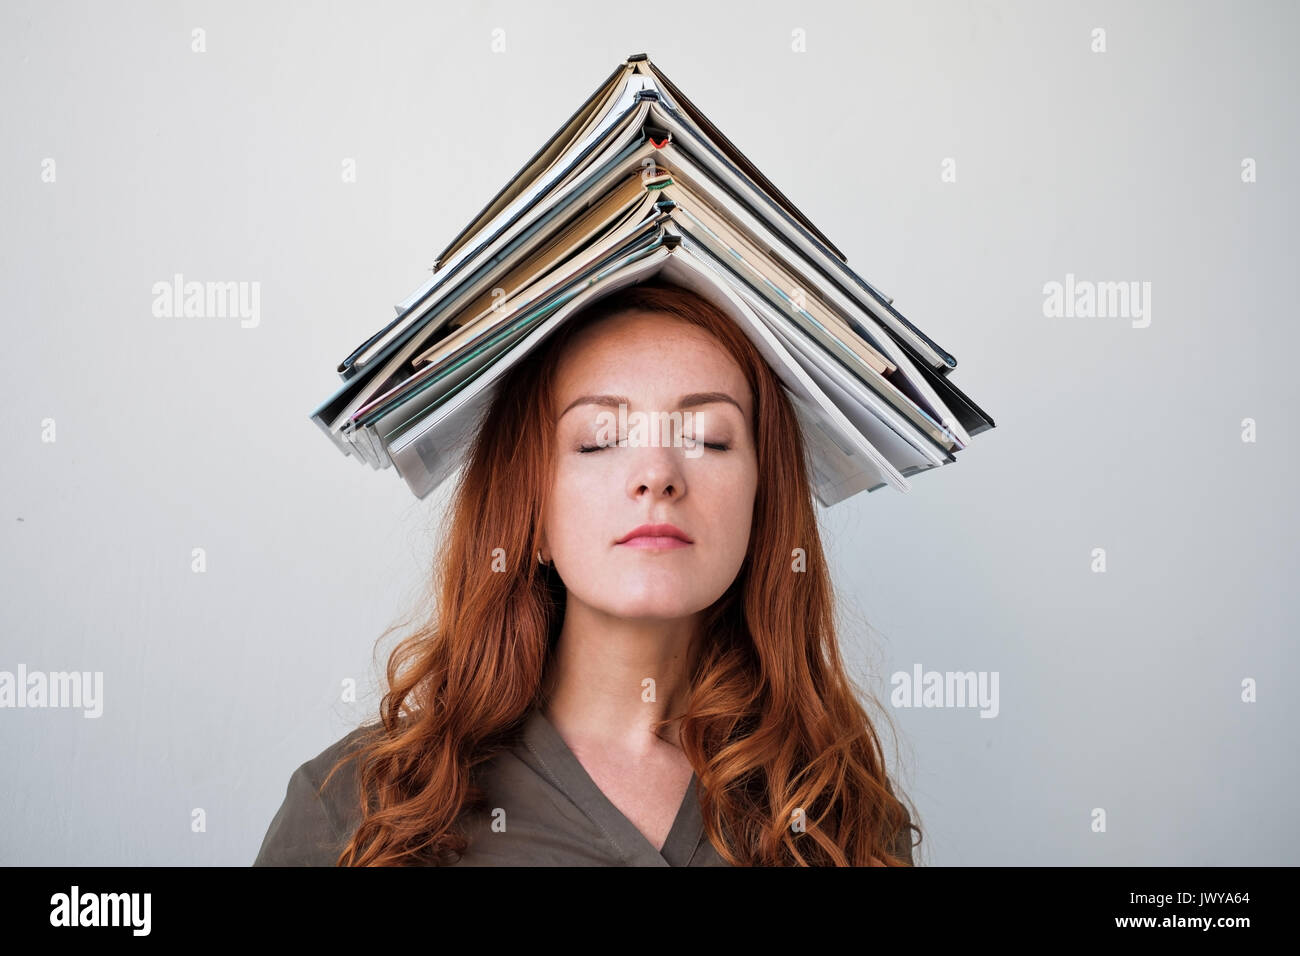 Young woman balancing un livre sur sa tête Fond blanc Photo Stock